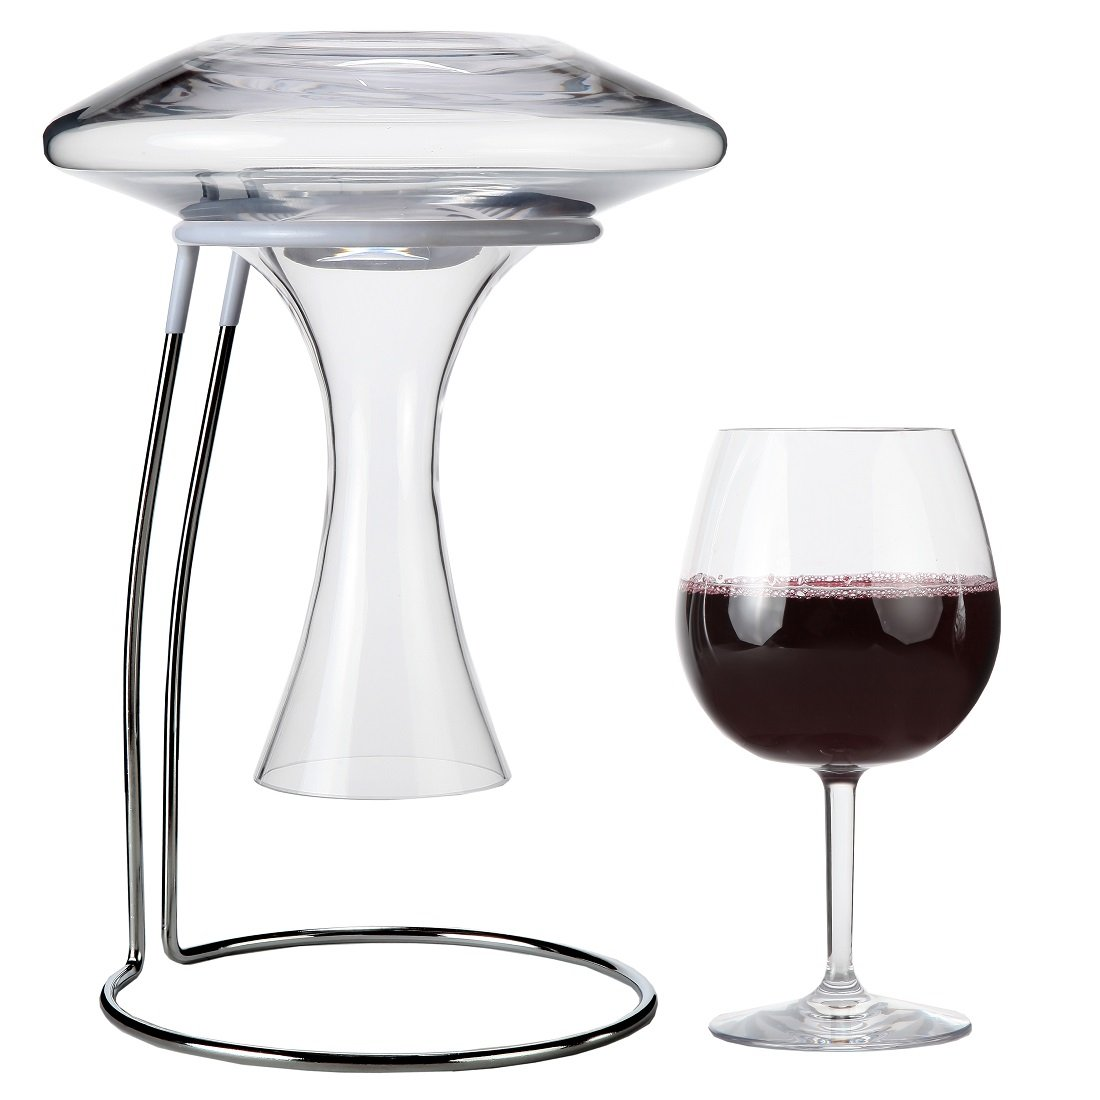 Lily's Home Wine Decanter Drying Stand with Rubber Coated Top to Prevent Scratches, Includes Cleaning Brush, For Standard Large Bottomed Wine Decanters, Decanter and Wine Glass NOT Included Lily's Home SW572